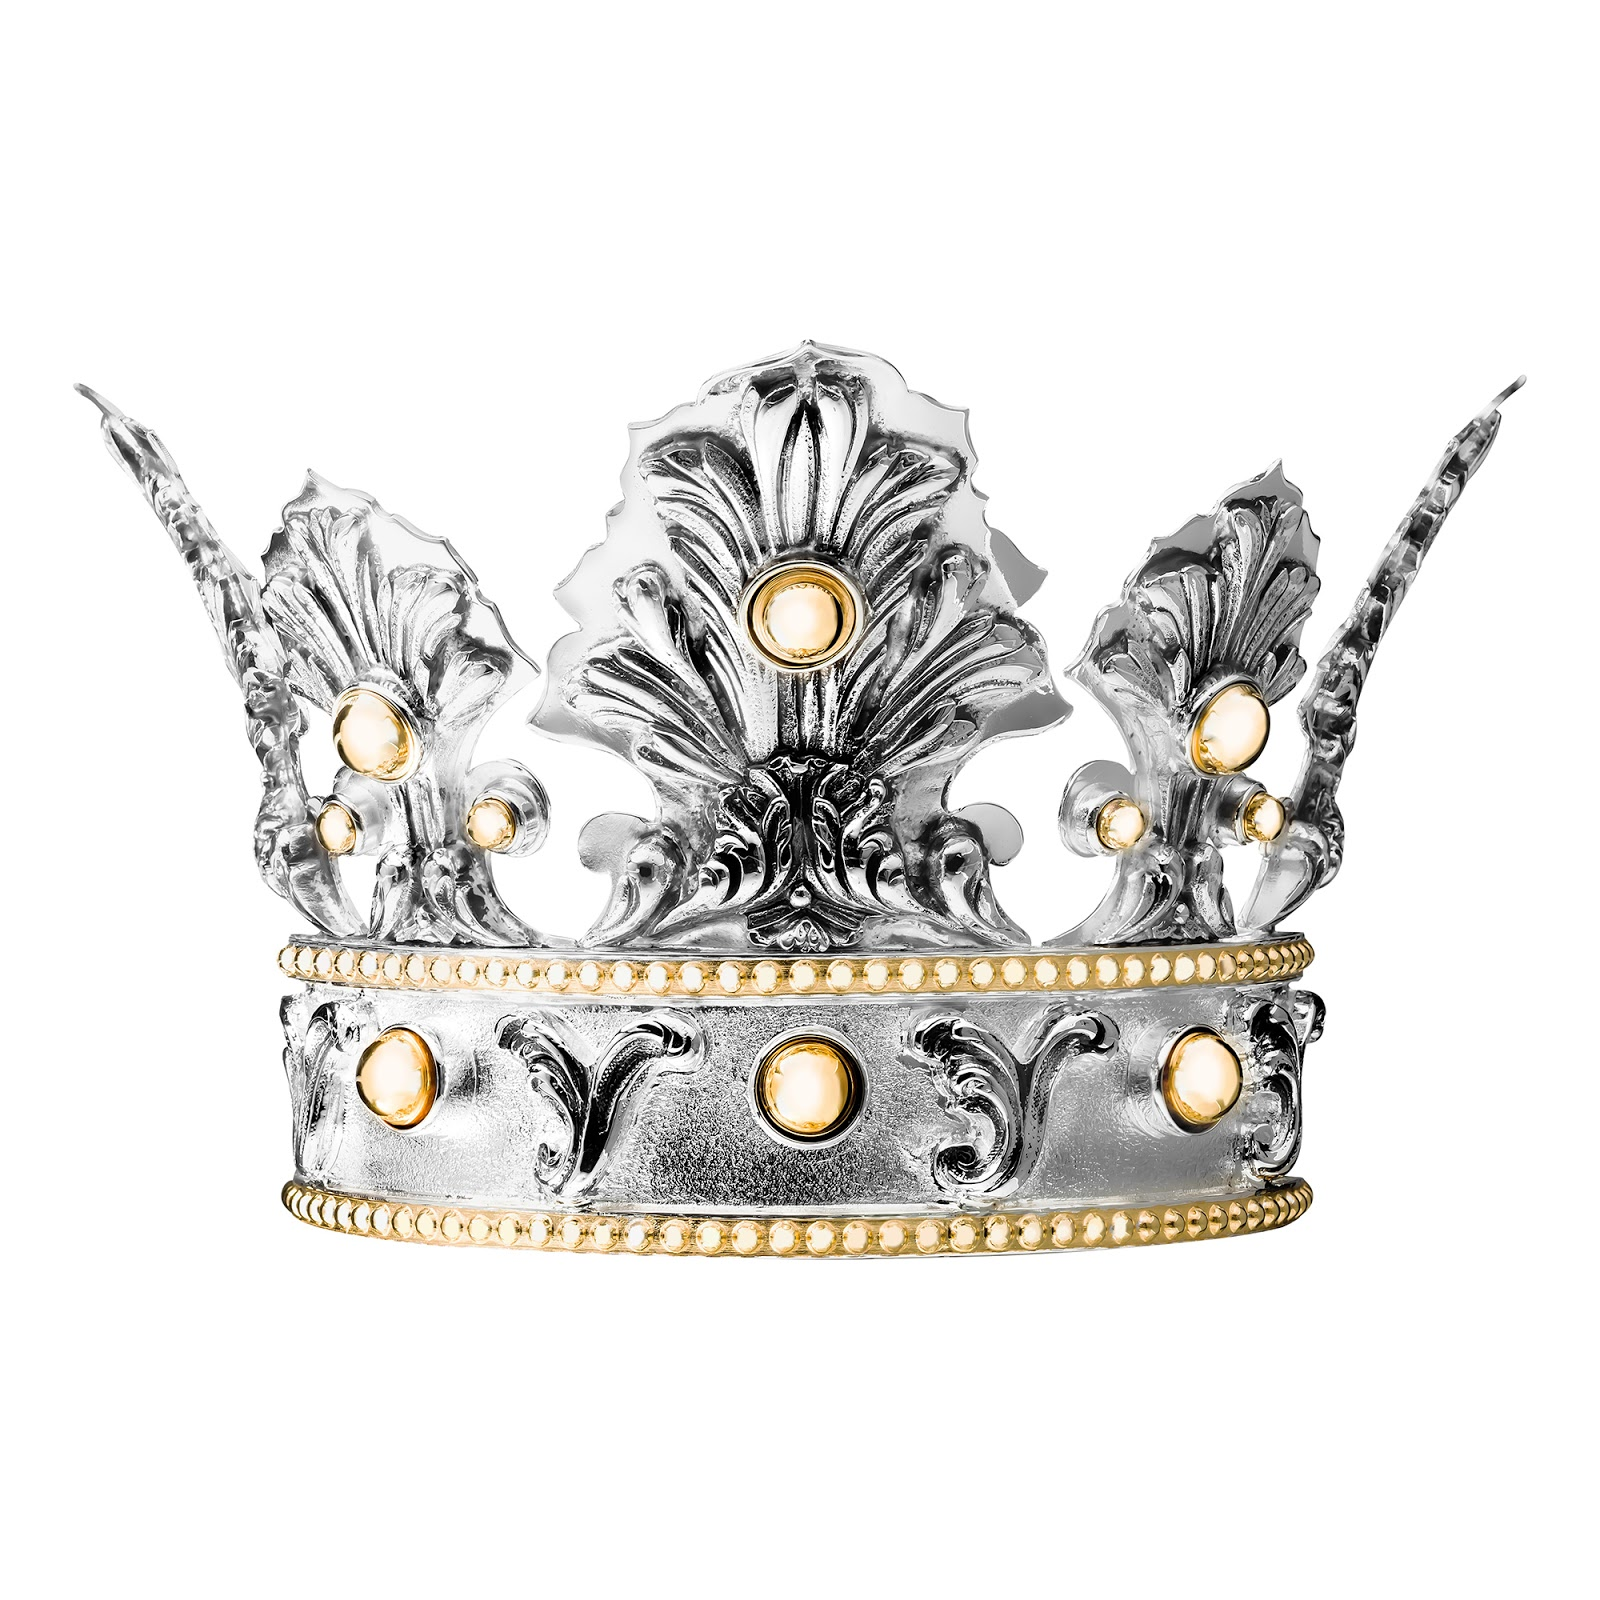 Jewelry News Network Christofle Creates Silver Crowns As